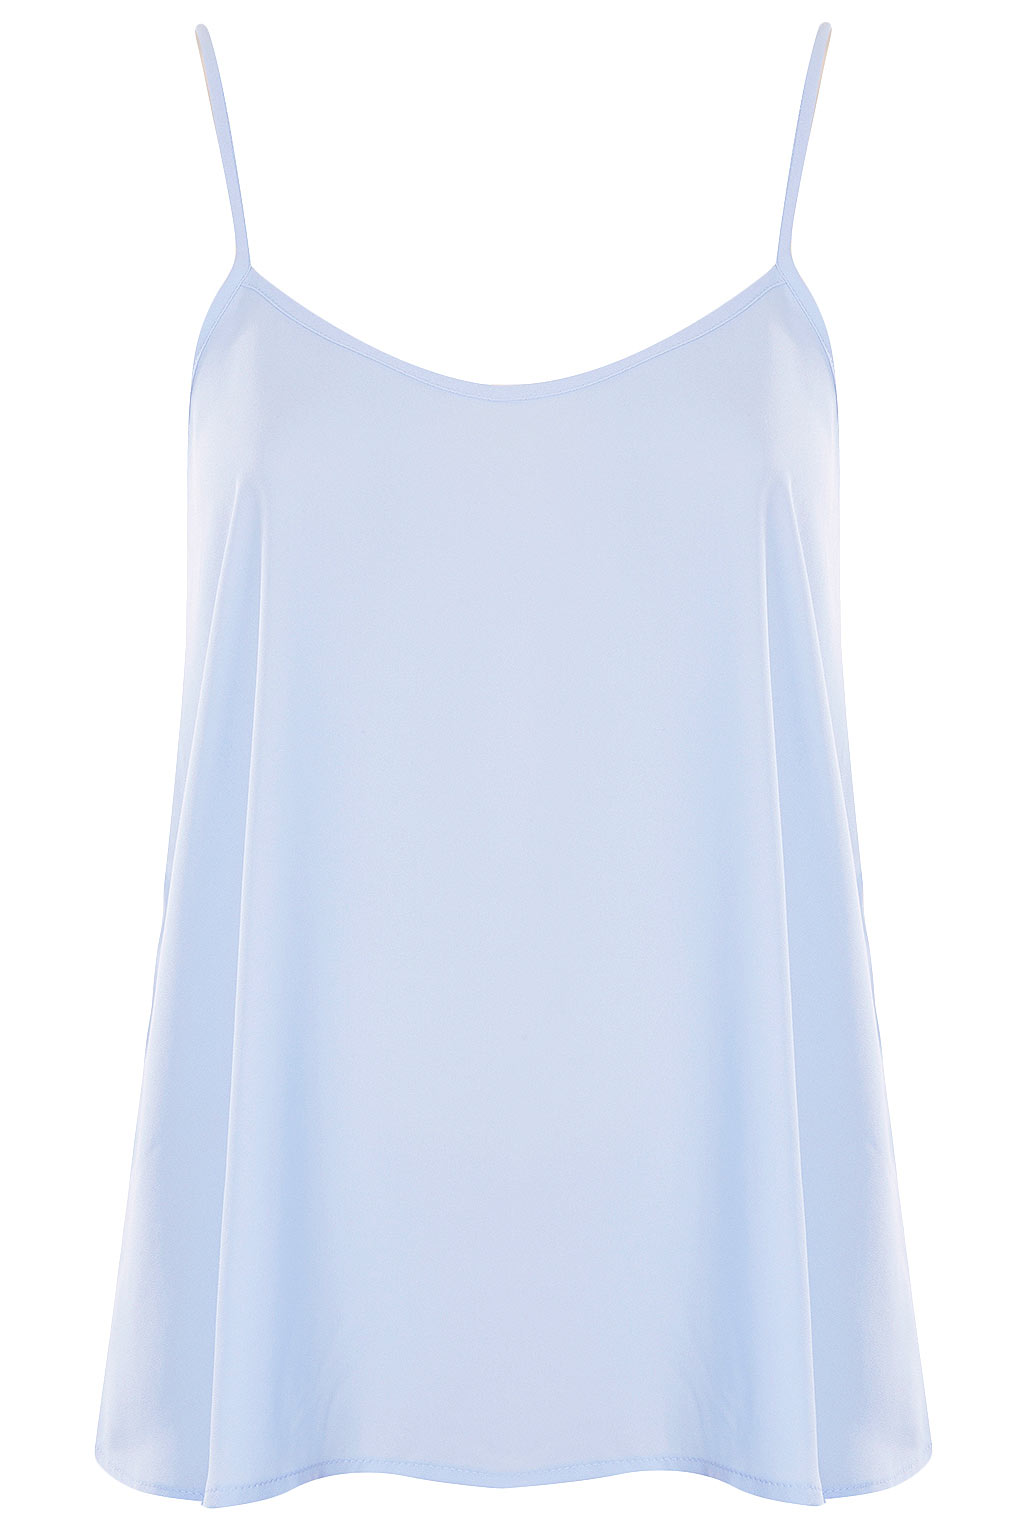 Find great deals on eBay for light blue cami. Shop with confidence.